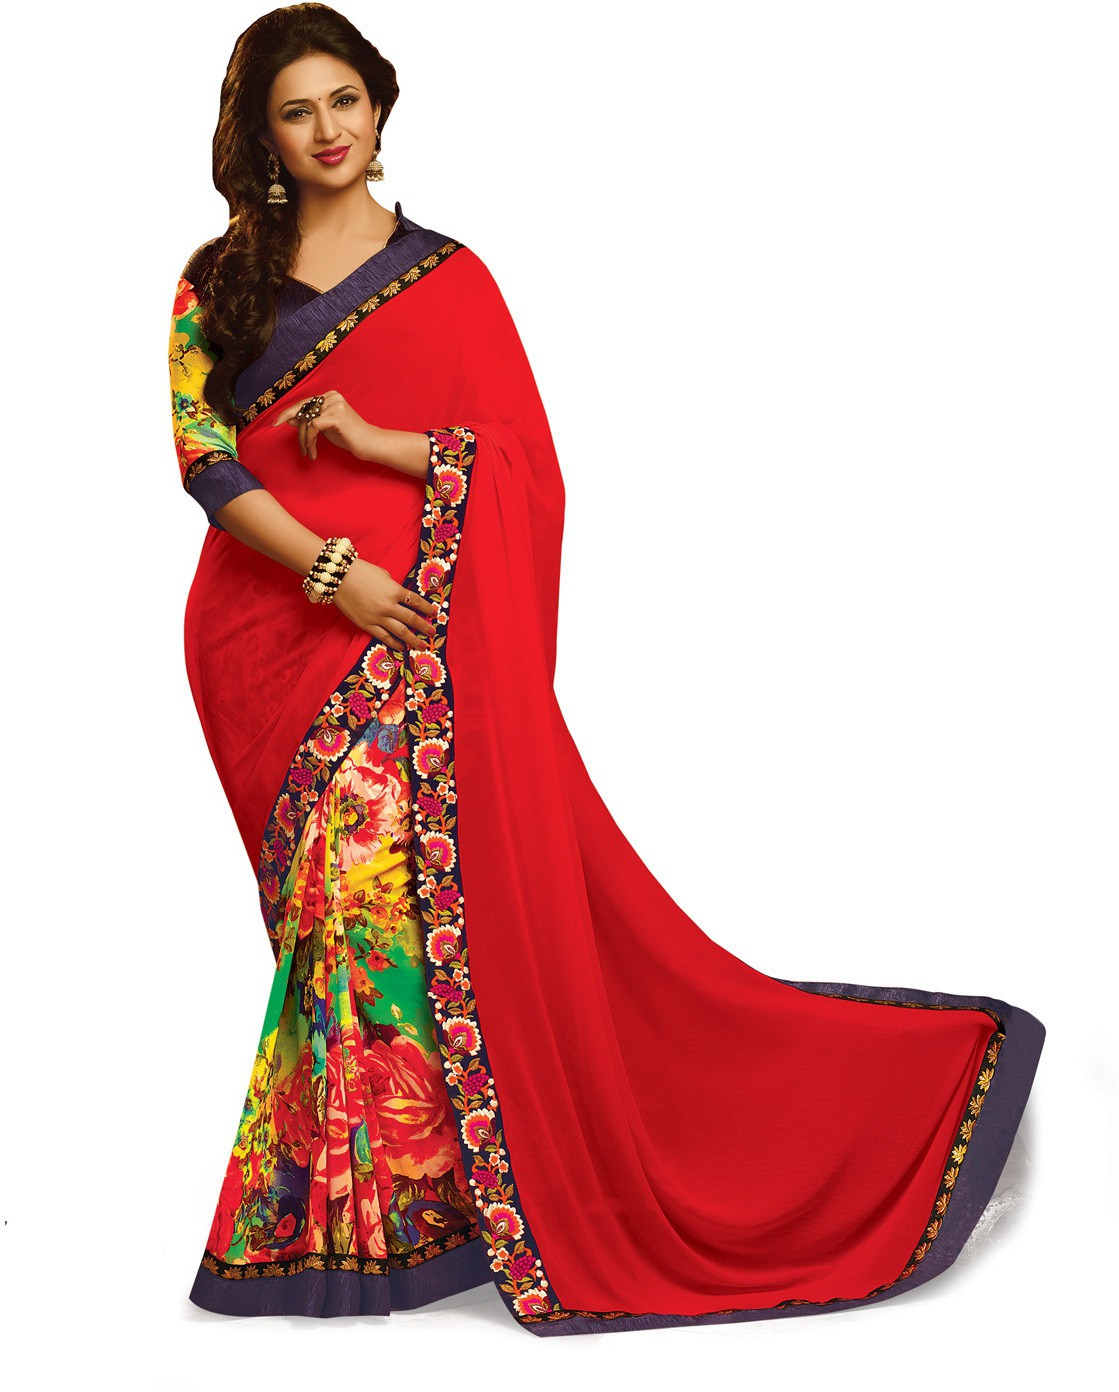 Indianbeauty Self Design, Printed, Embroidered Bollywood Pure Georgette Saree(Red, Multicolor)